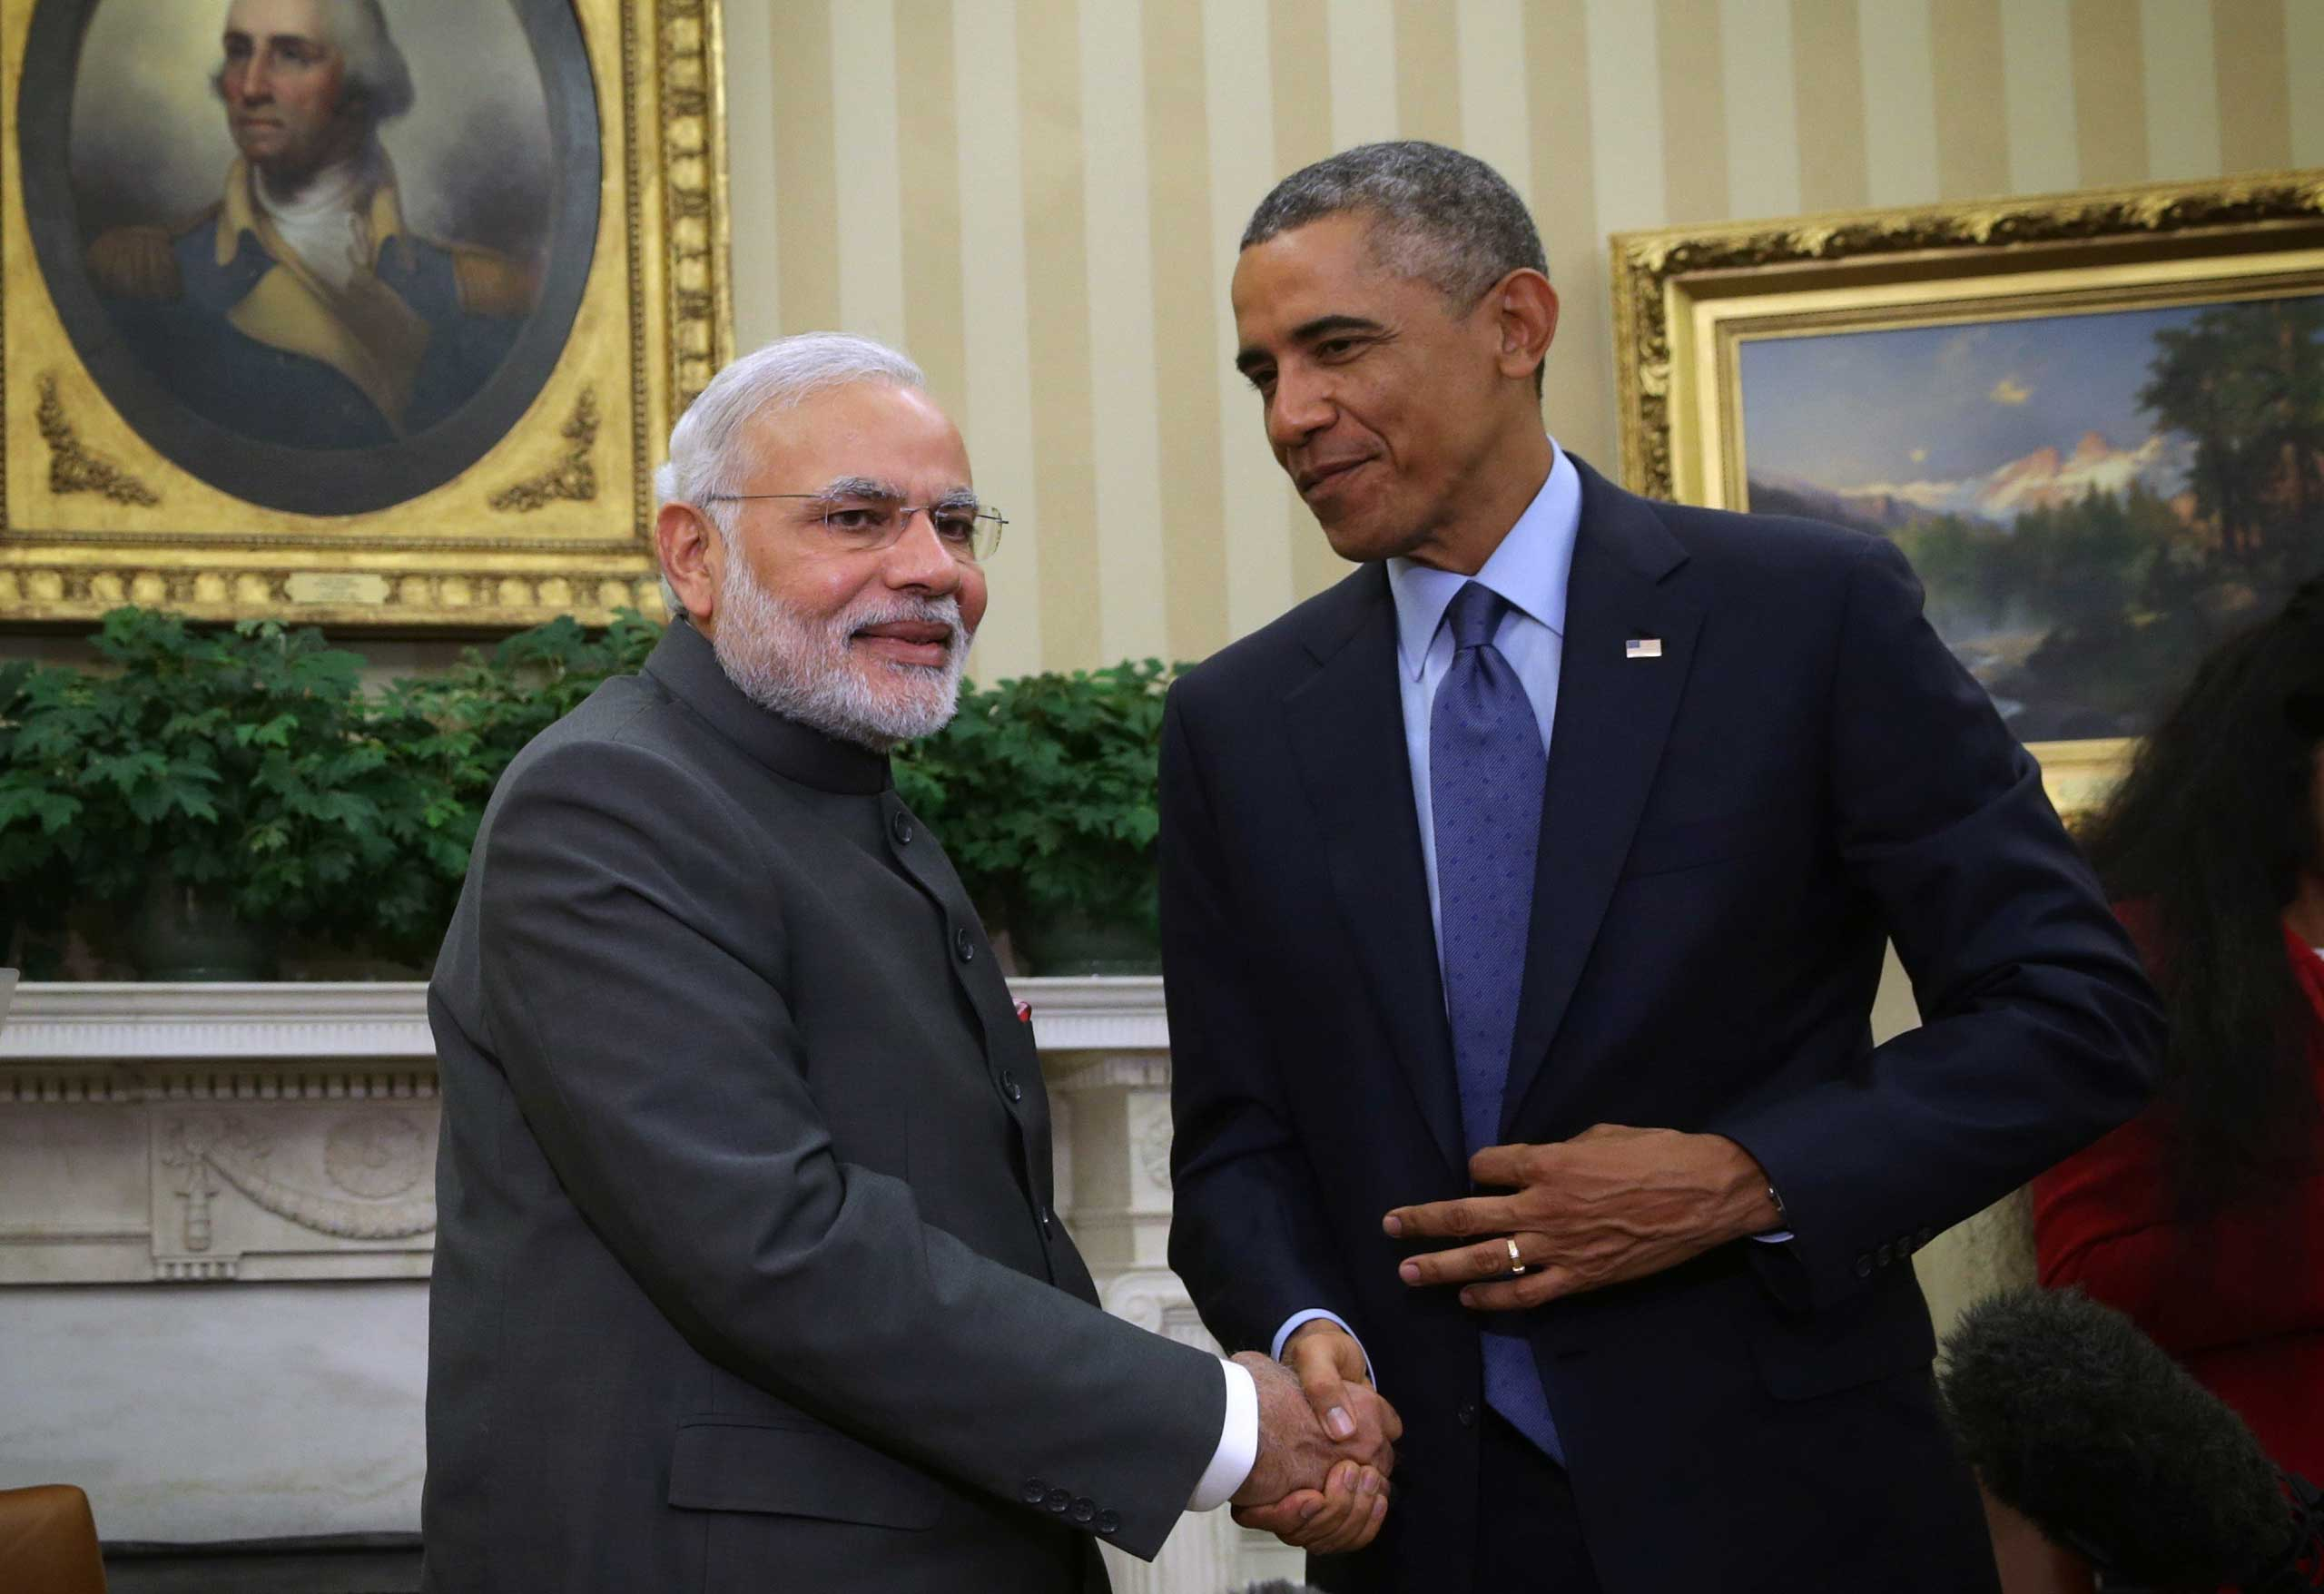 U.S. President Barack Obama meets with Indian Prime Minister Narendra Modi in the Oval Office of the White House in Washington on Sept. 30, 2014.